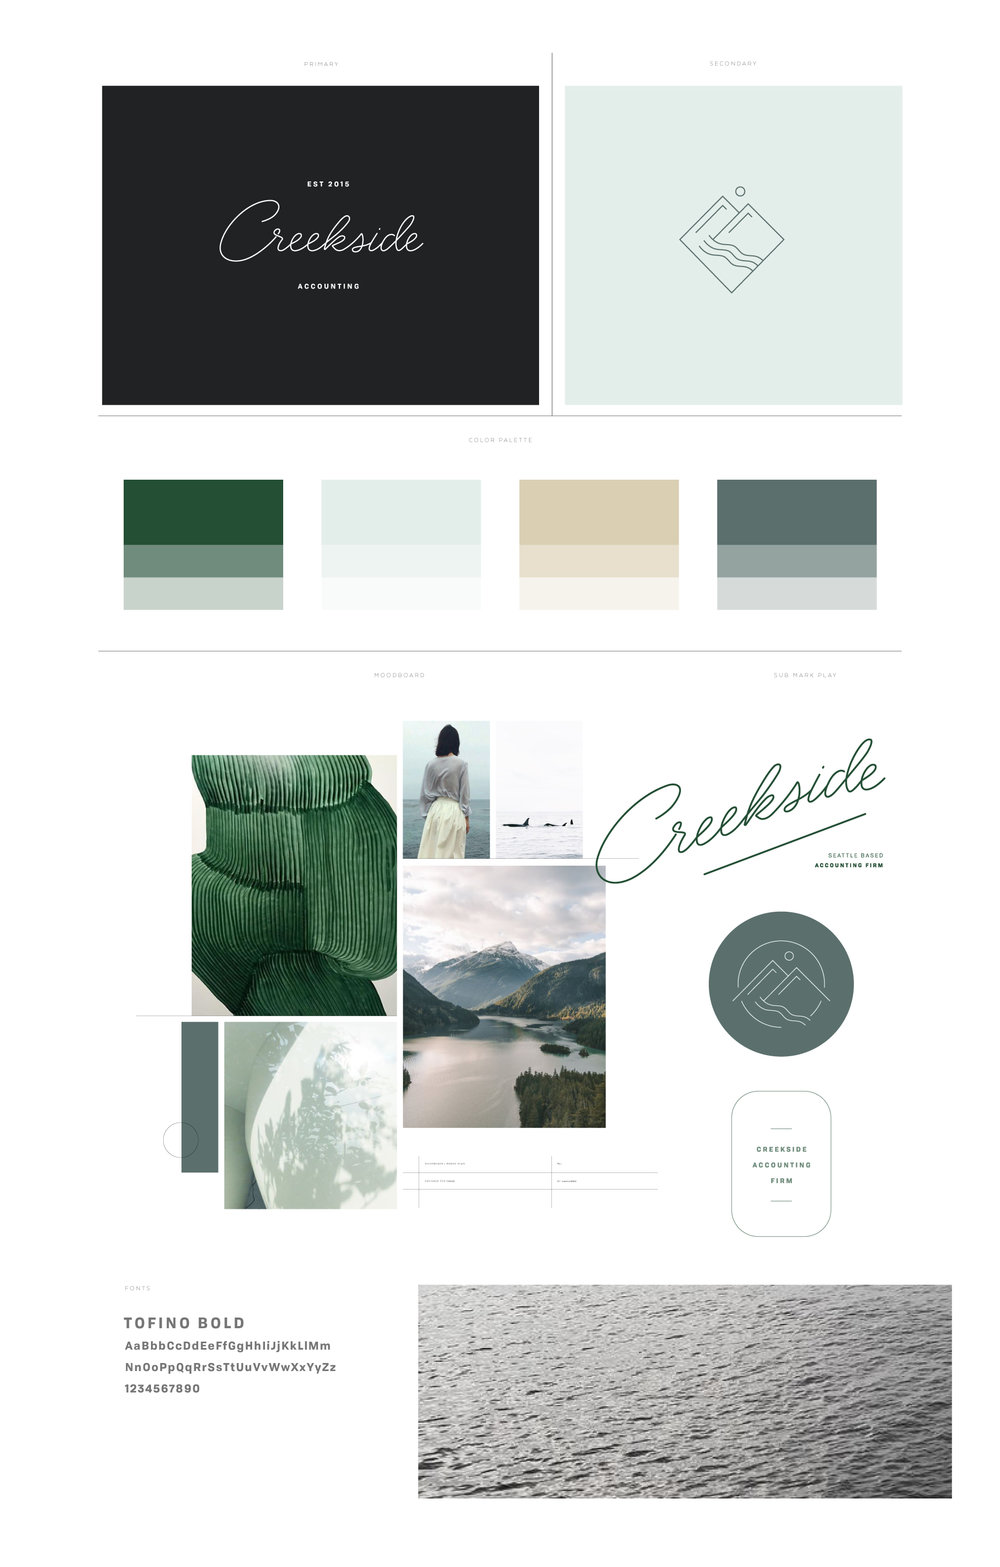 Creekside-Brand-Board-1.jpg